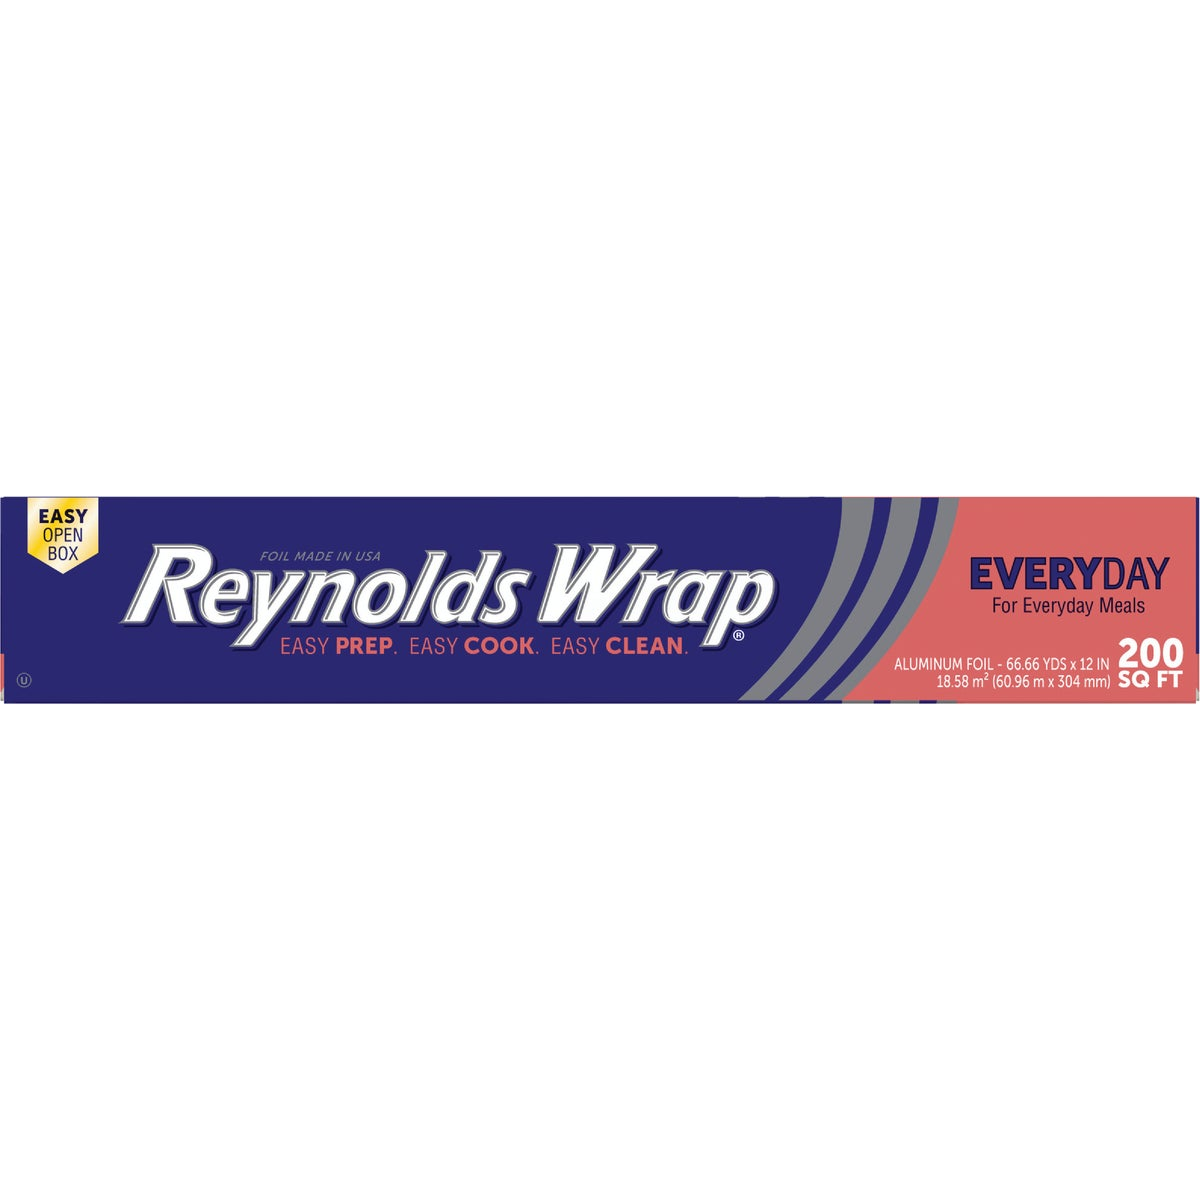 200SQ FT ALUMINUM FOIL - 018 by Reynolds Pkg. Group